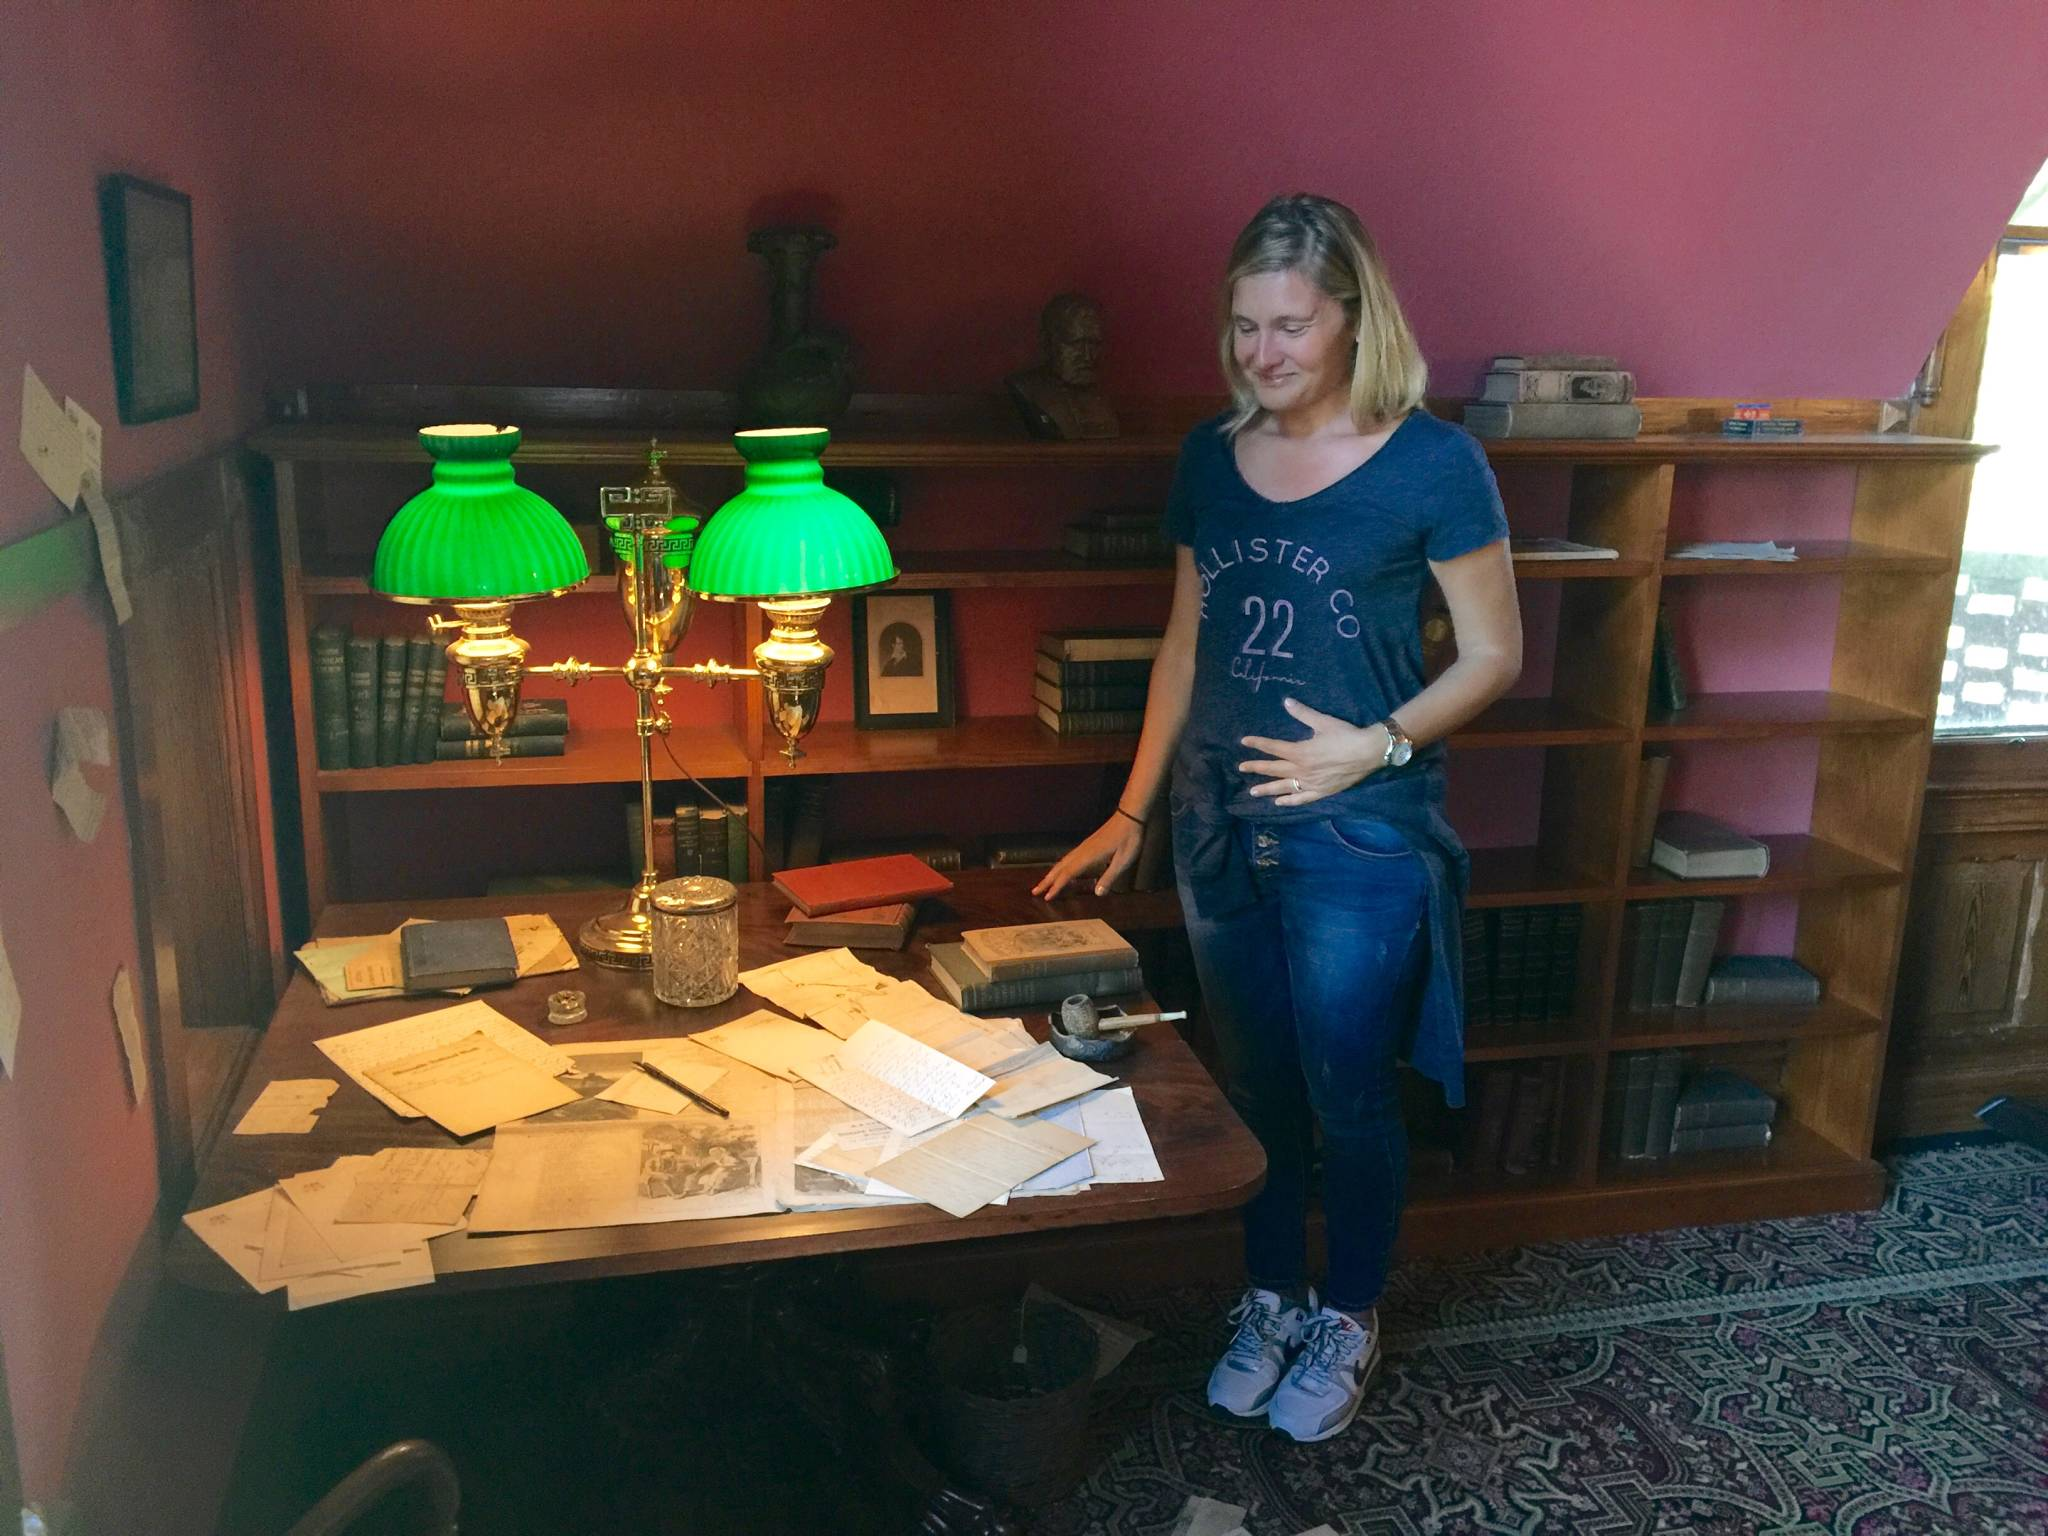 In front of Mark Twain's desk